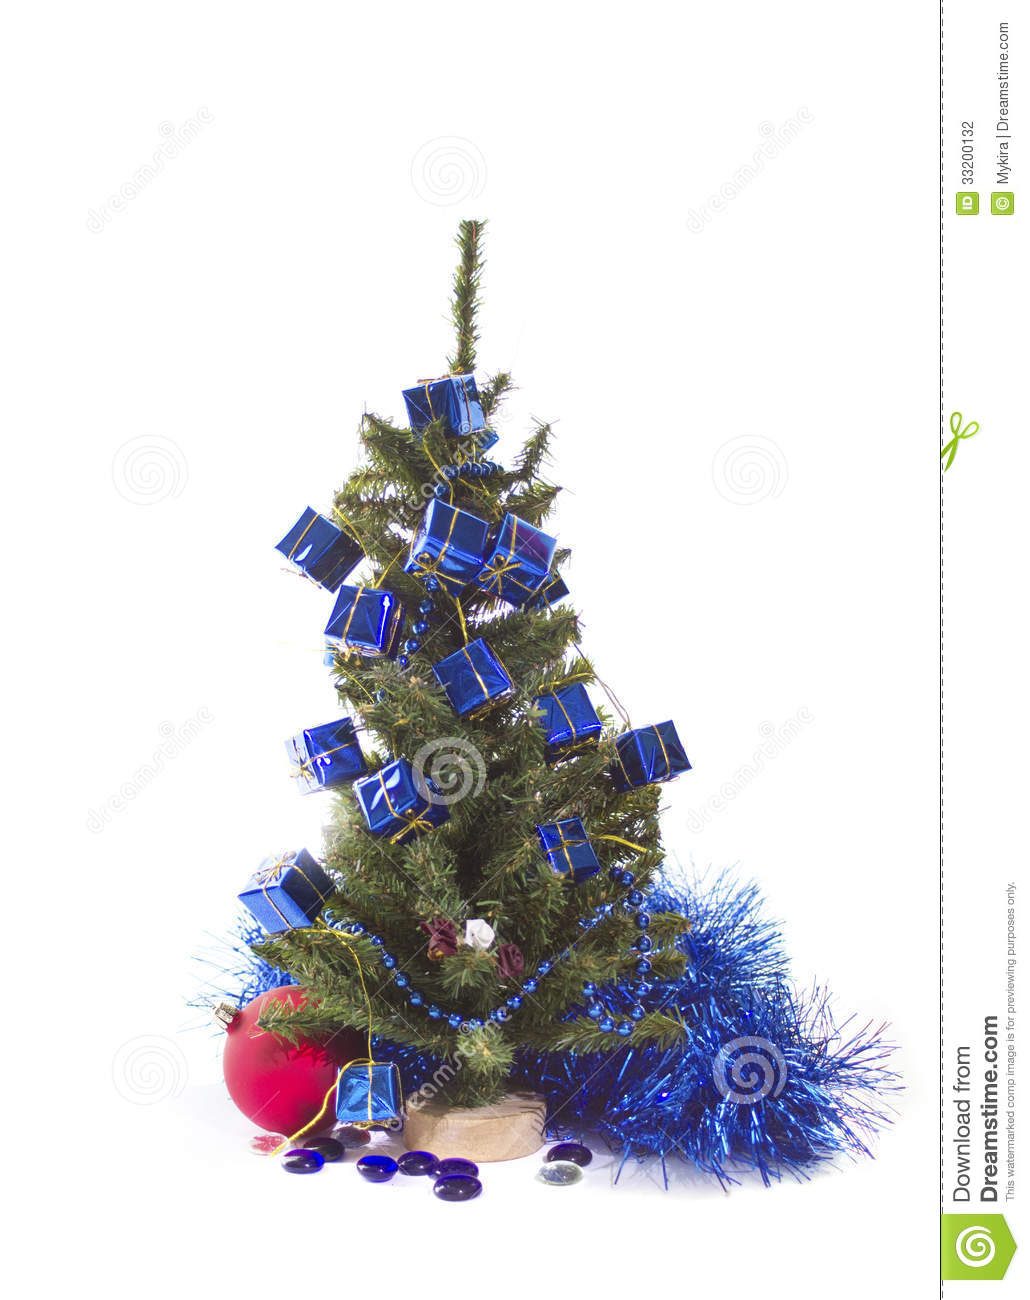 Blue christmas tree decorations - Christmas Tree Decorations Blue And Red Photo 3